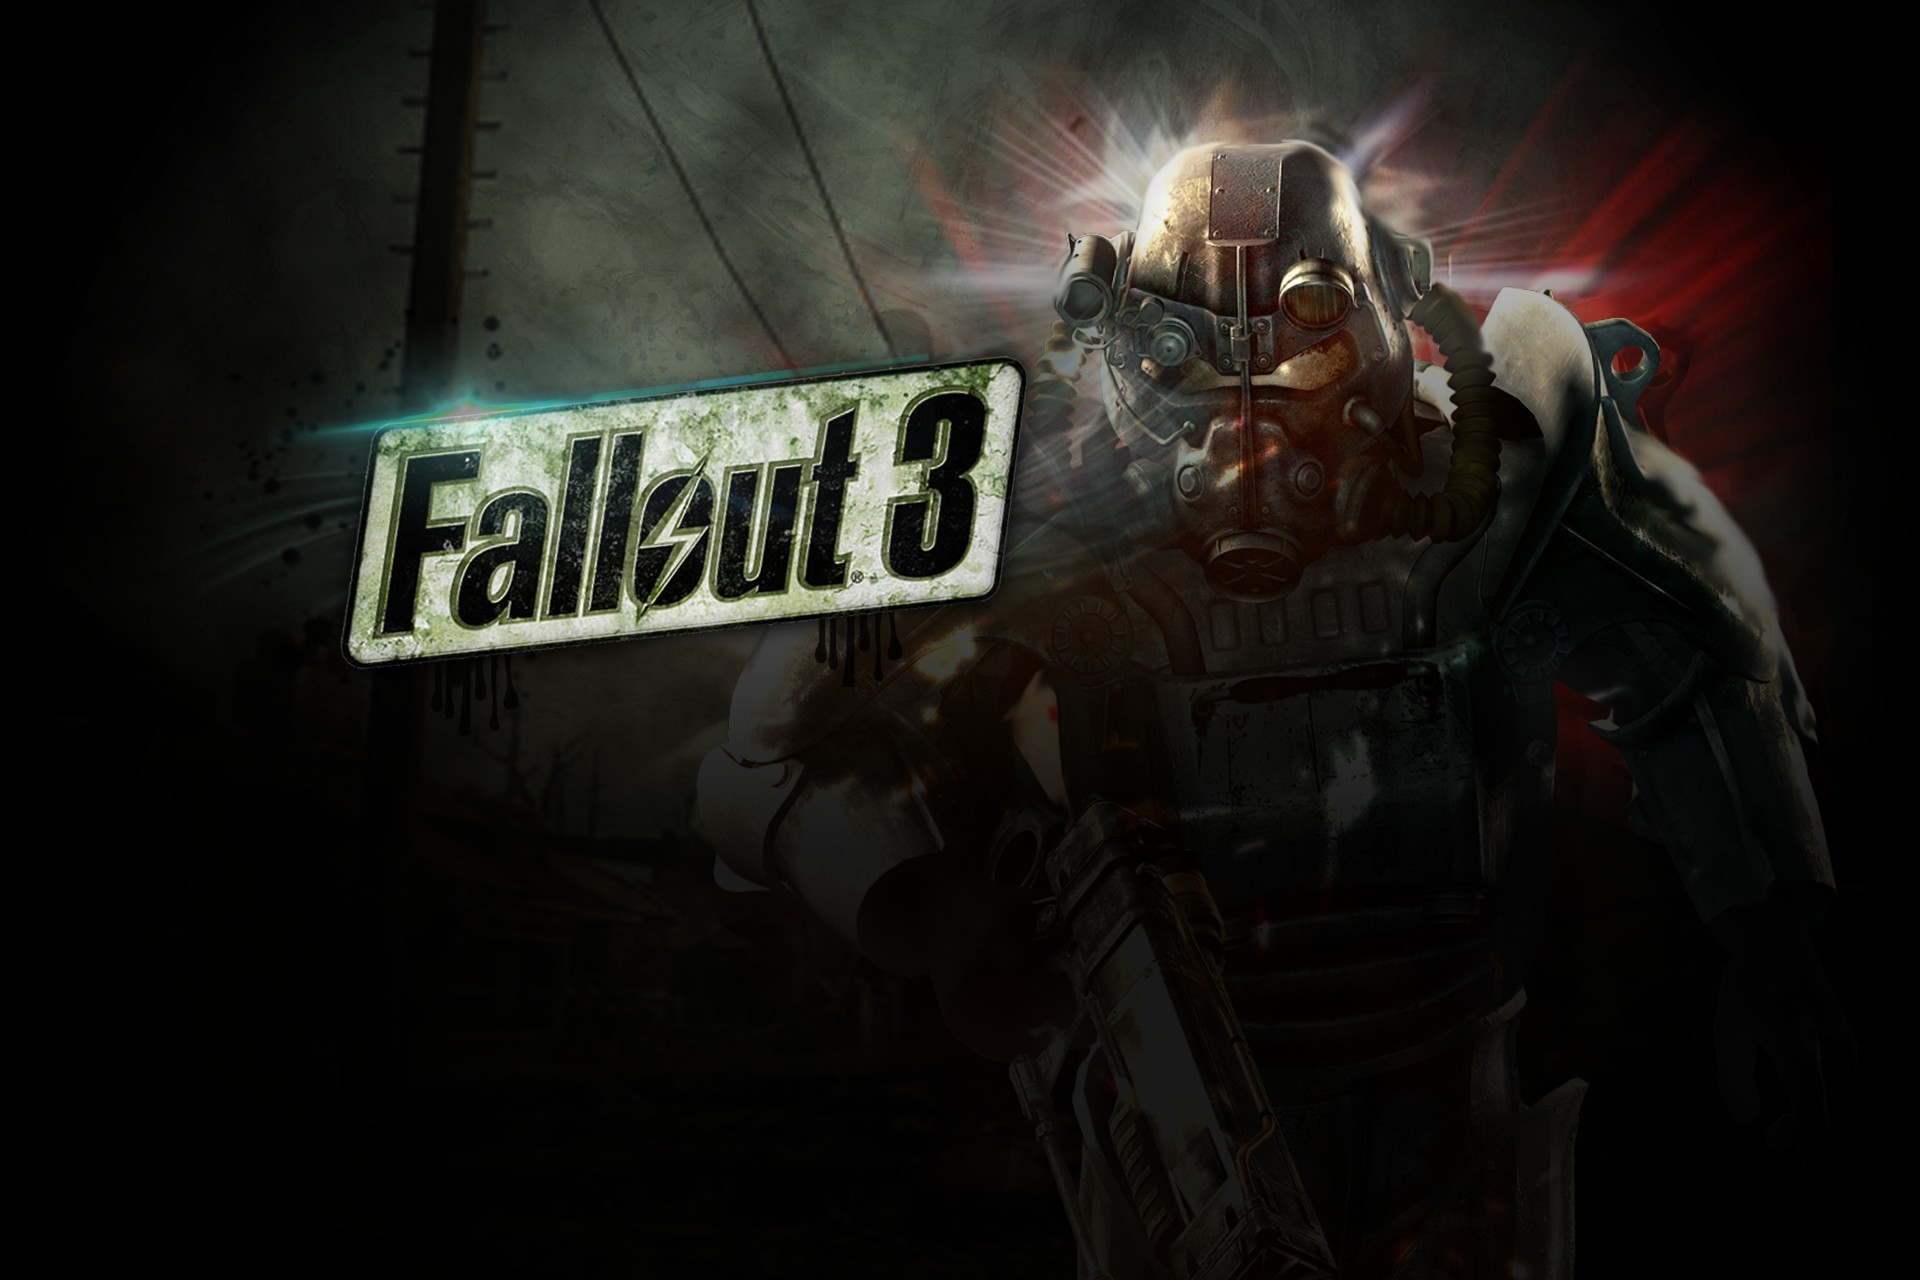 Fallout 3 desktop background 72 images 3456x1944 video games fallout fallout 2 fallout 3 fallout new vegas fallout 4 power armor futuristic wallpapers hd desktop and mobile backgrounds voltagebd Image collections